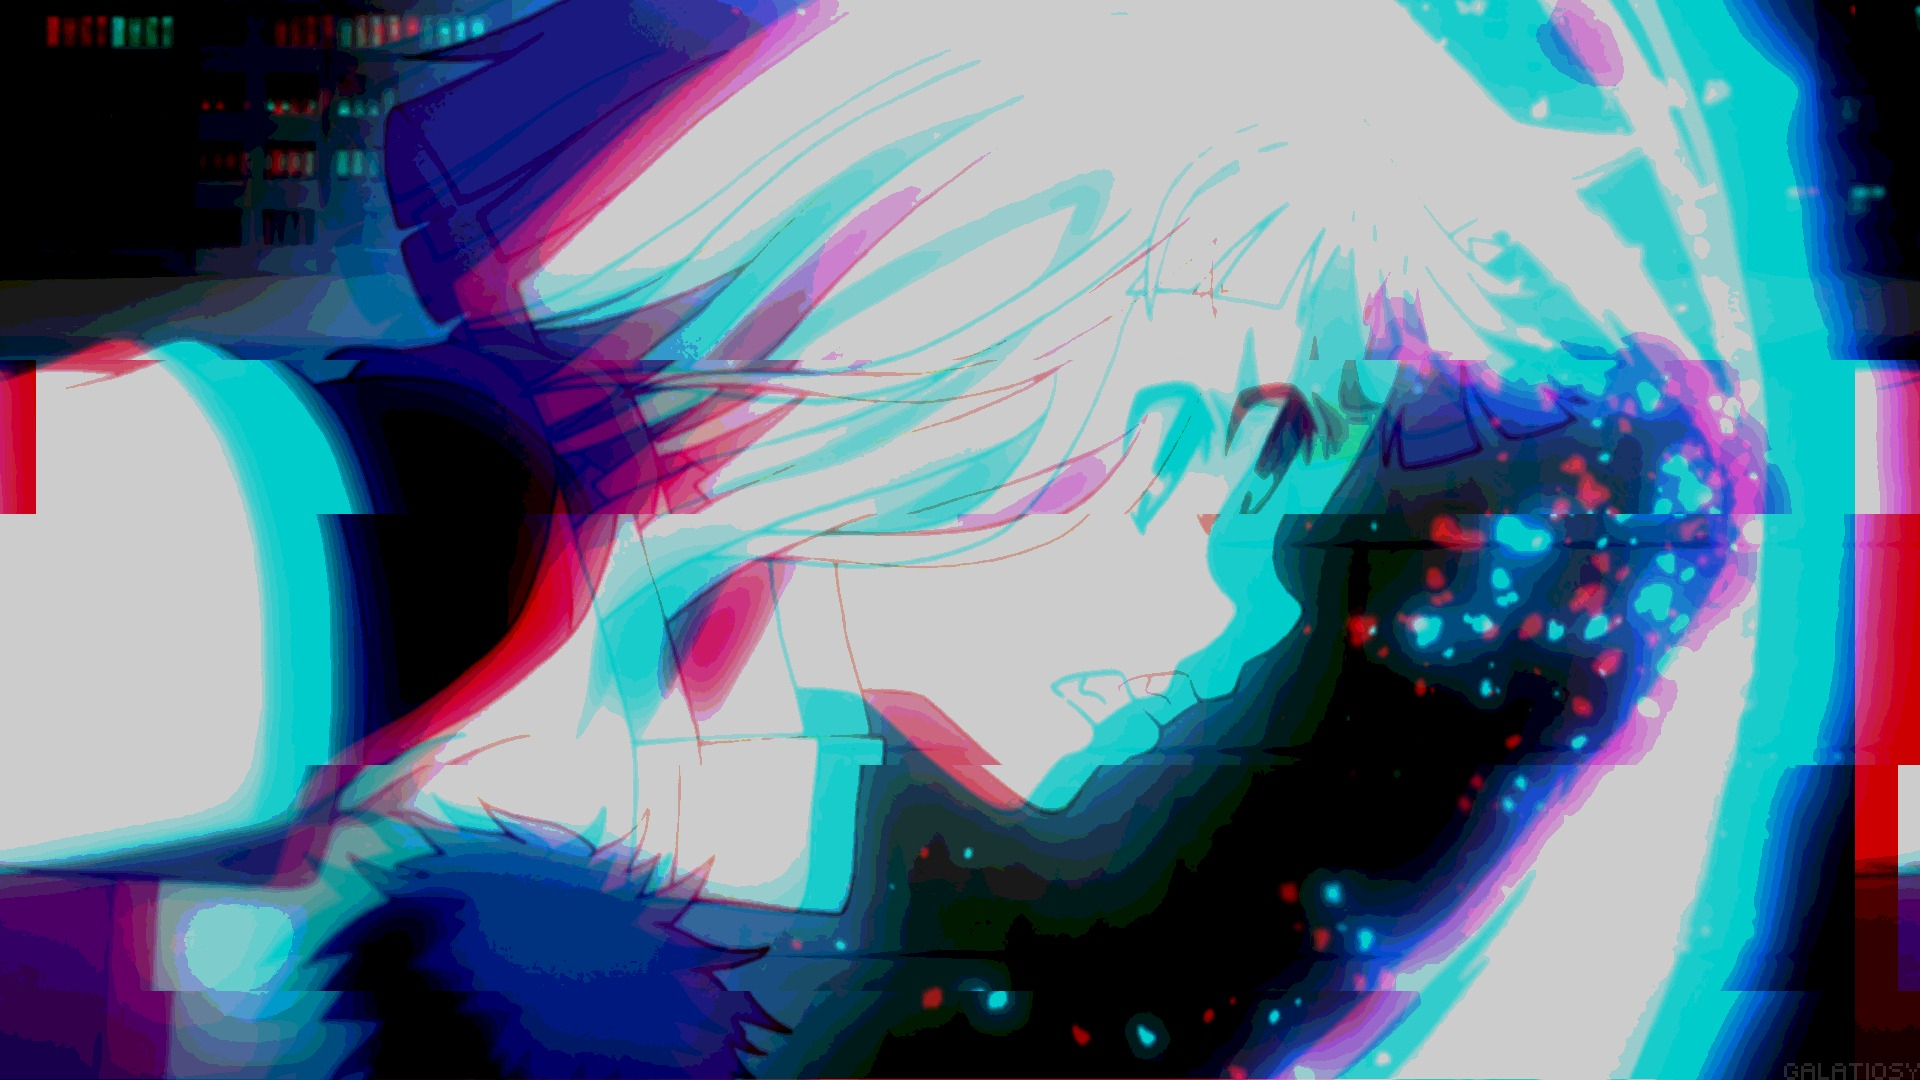 Cute Anime Girl HD Aesthetic Glitch Wallpapers 65770 1920x1080px